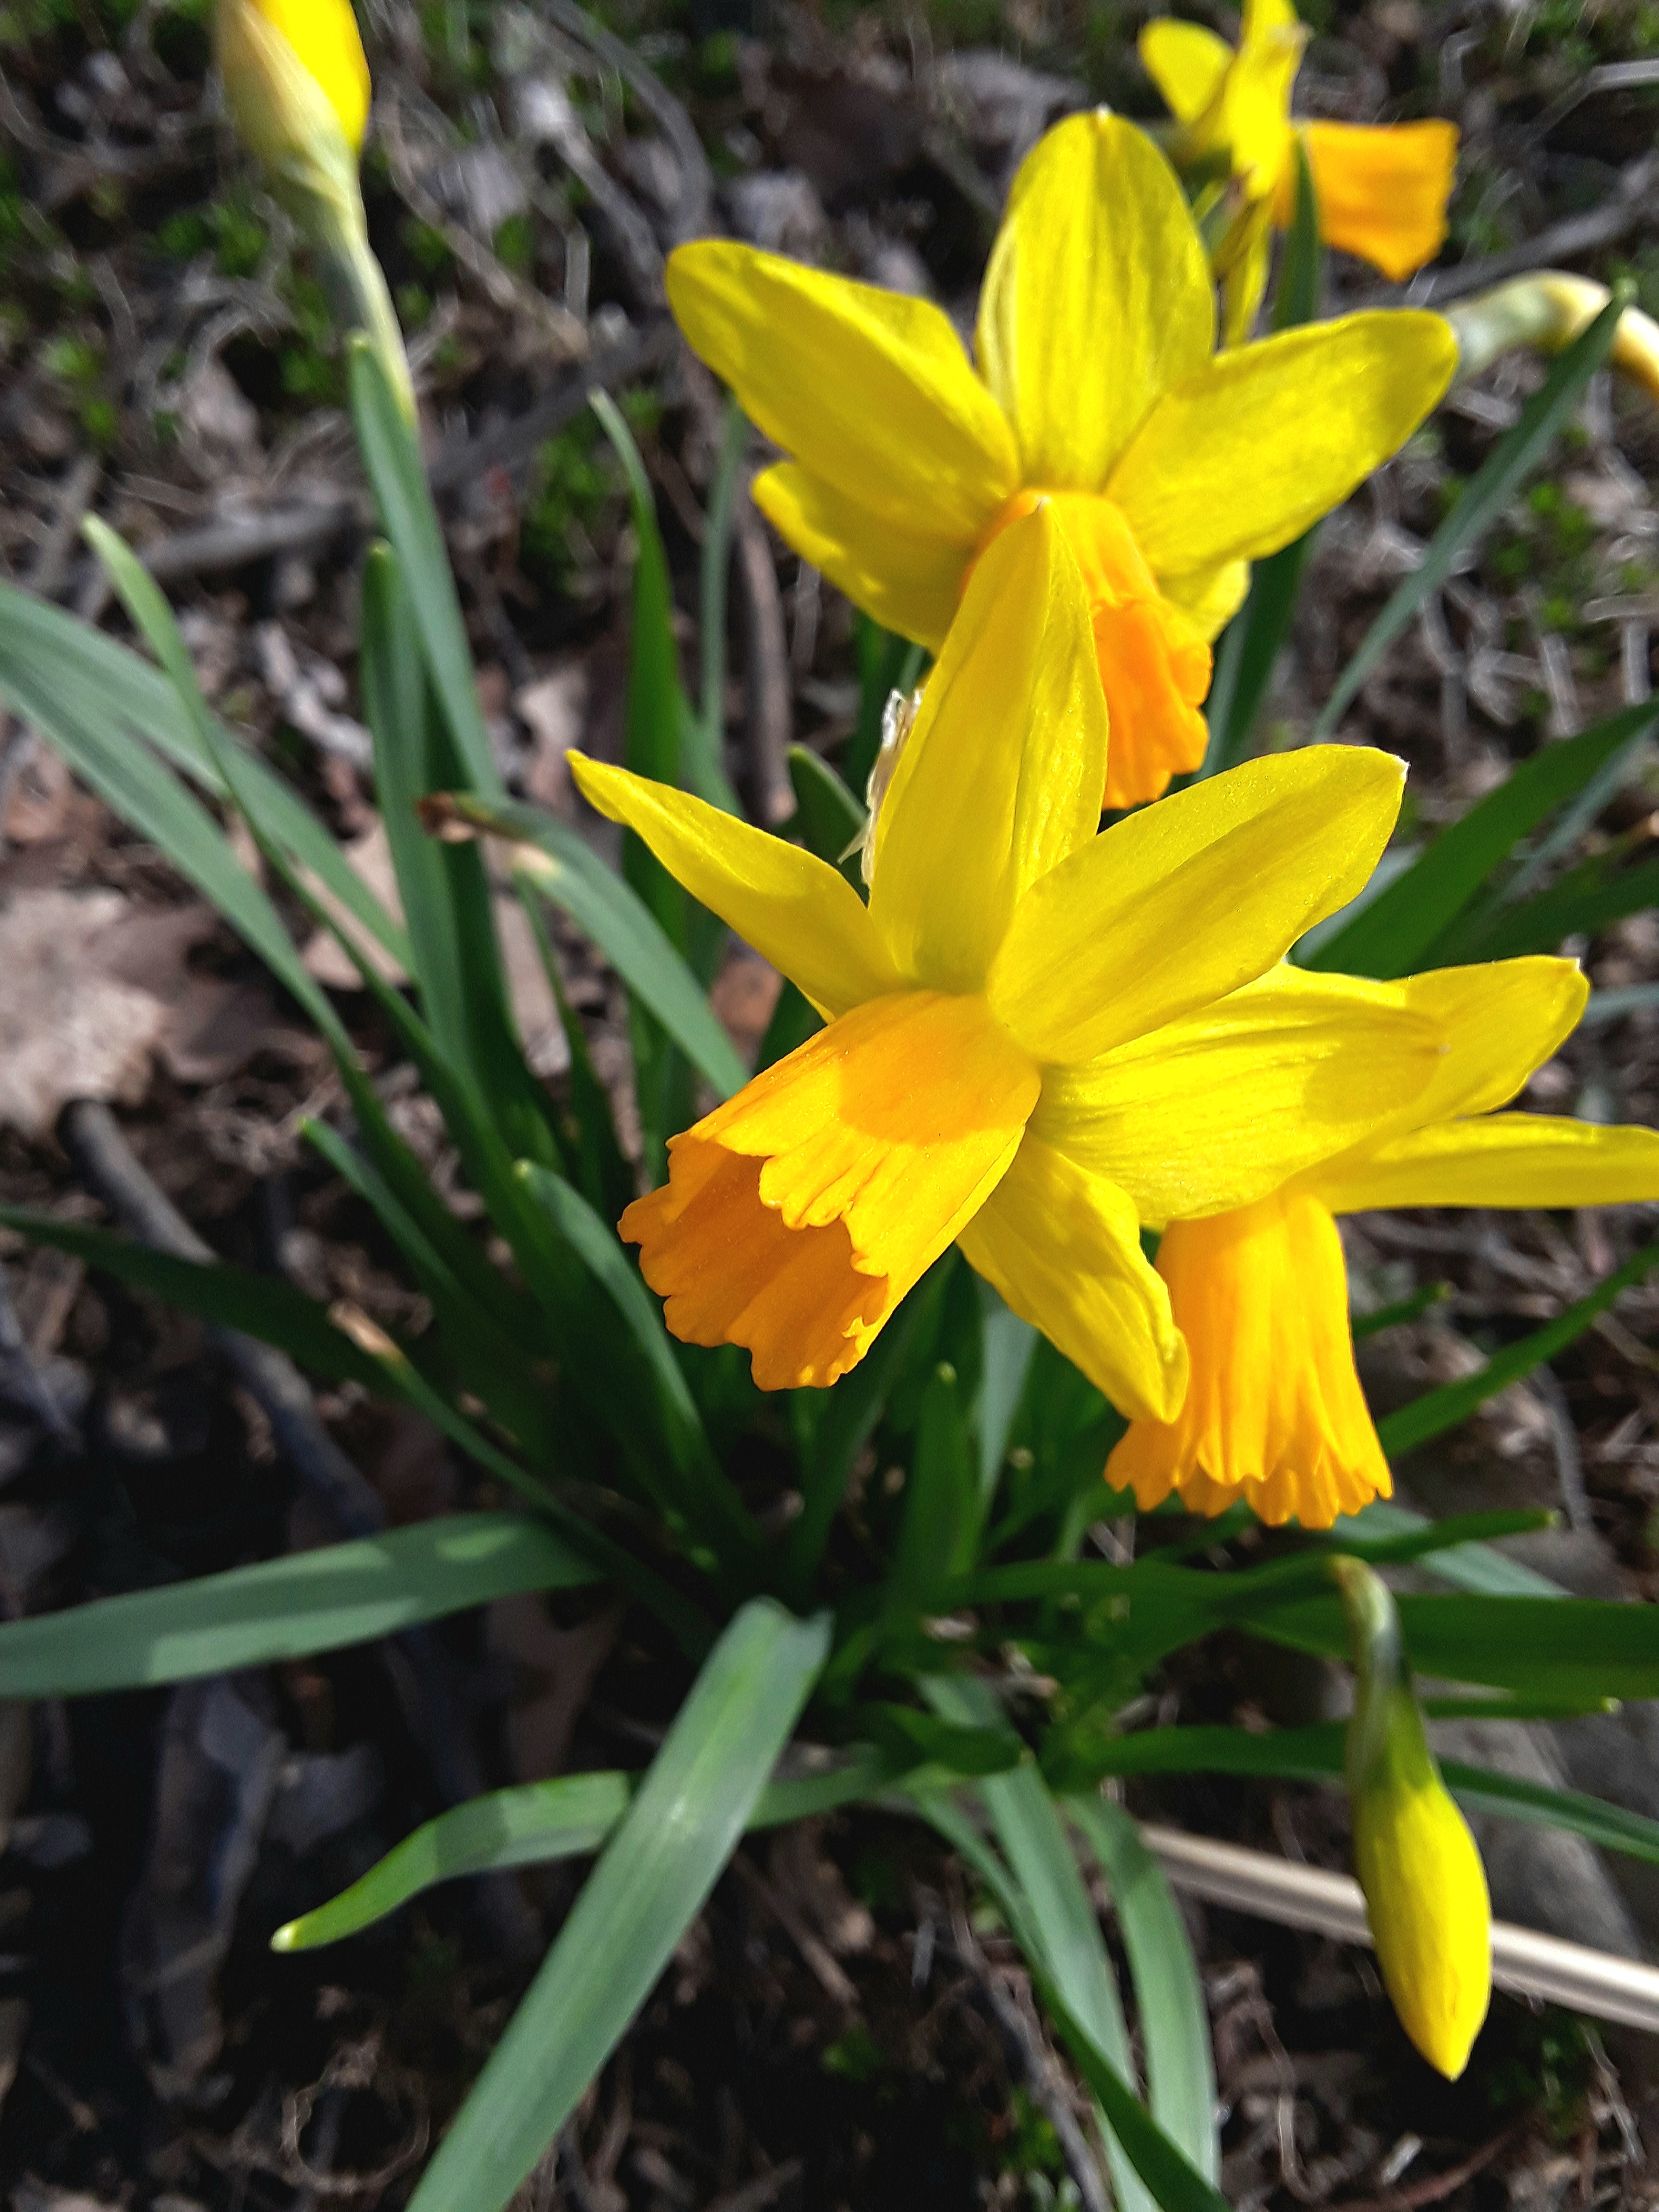 the miniature narcissus Tete a tete is one of the first to flower